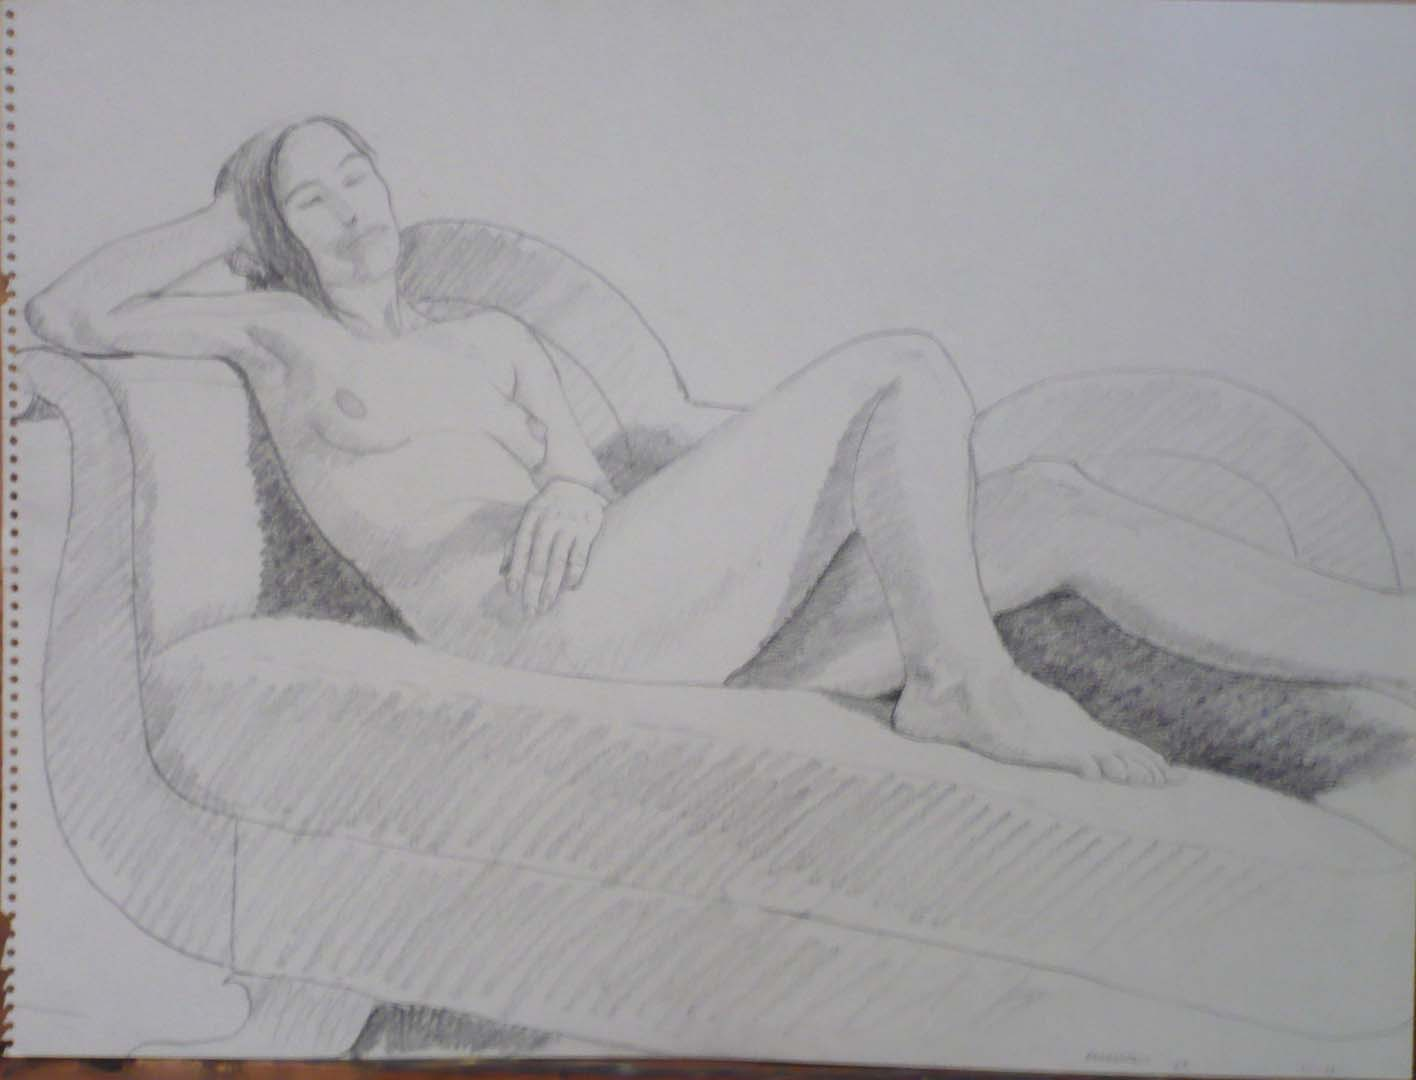 1960 Reclined Model on Sofa Pencil on Paper 18 x 24